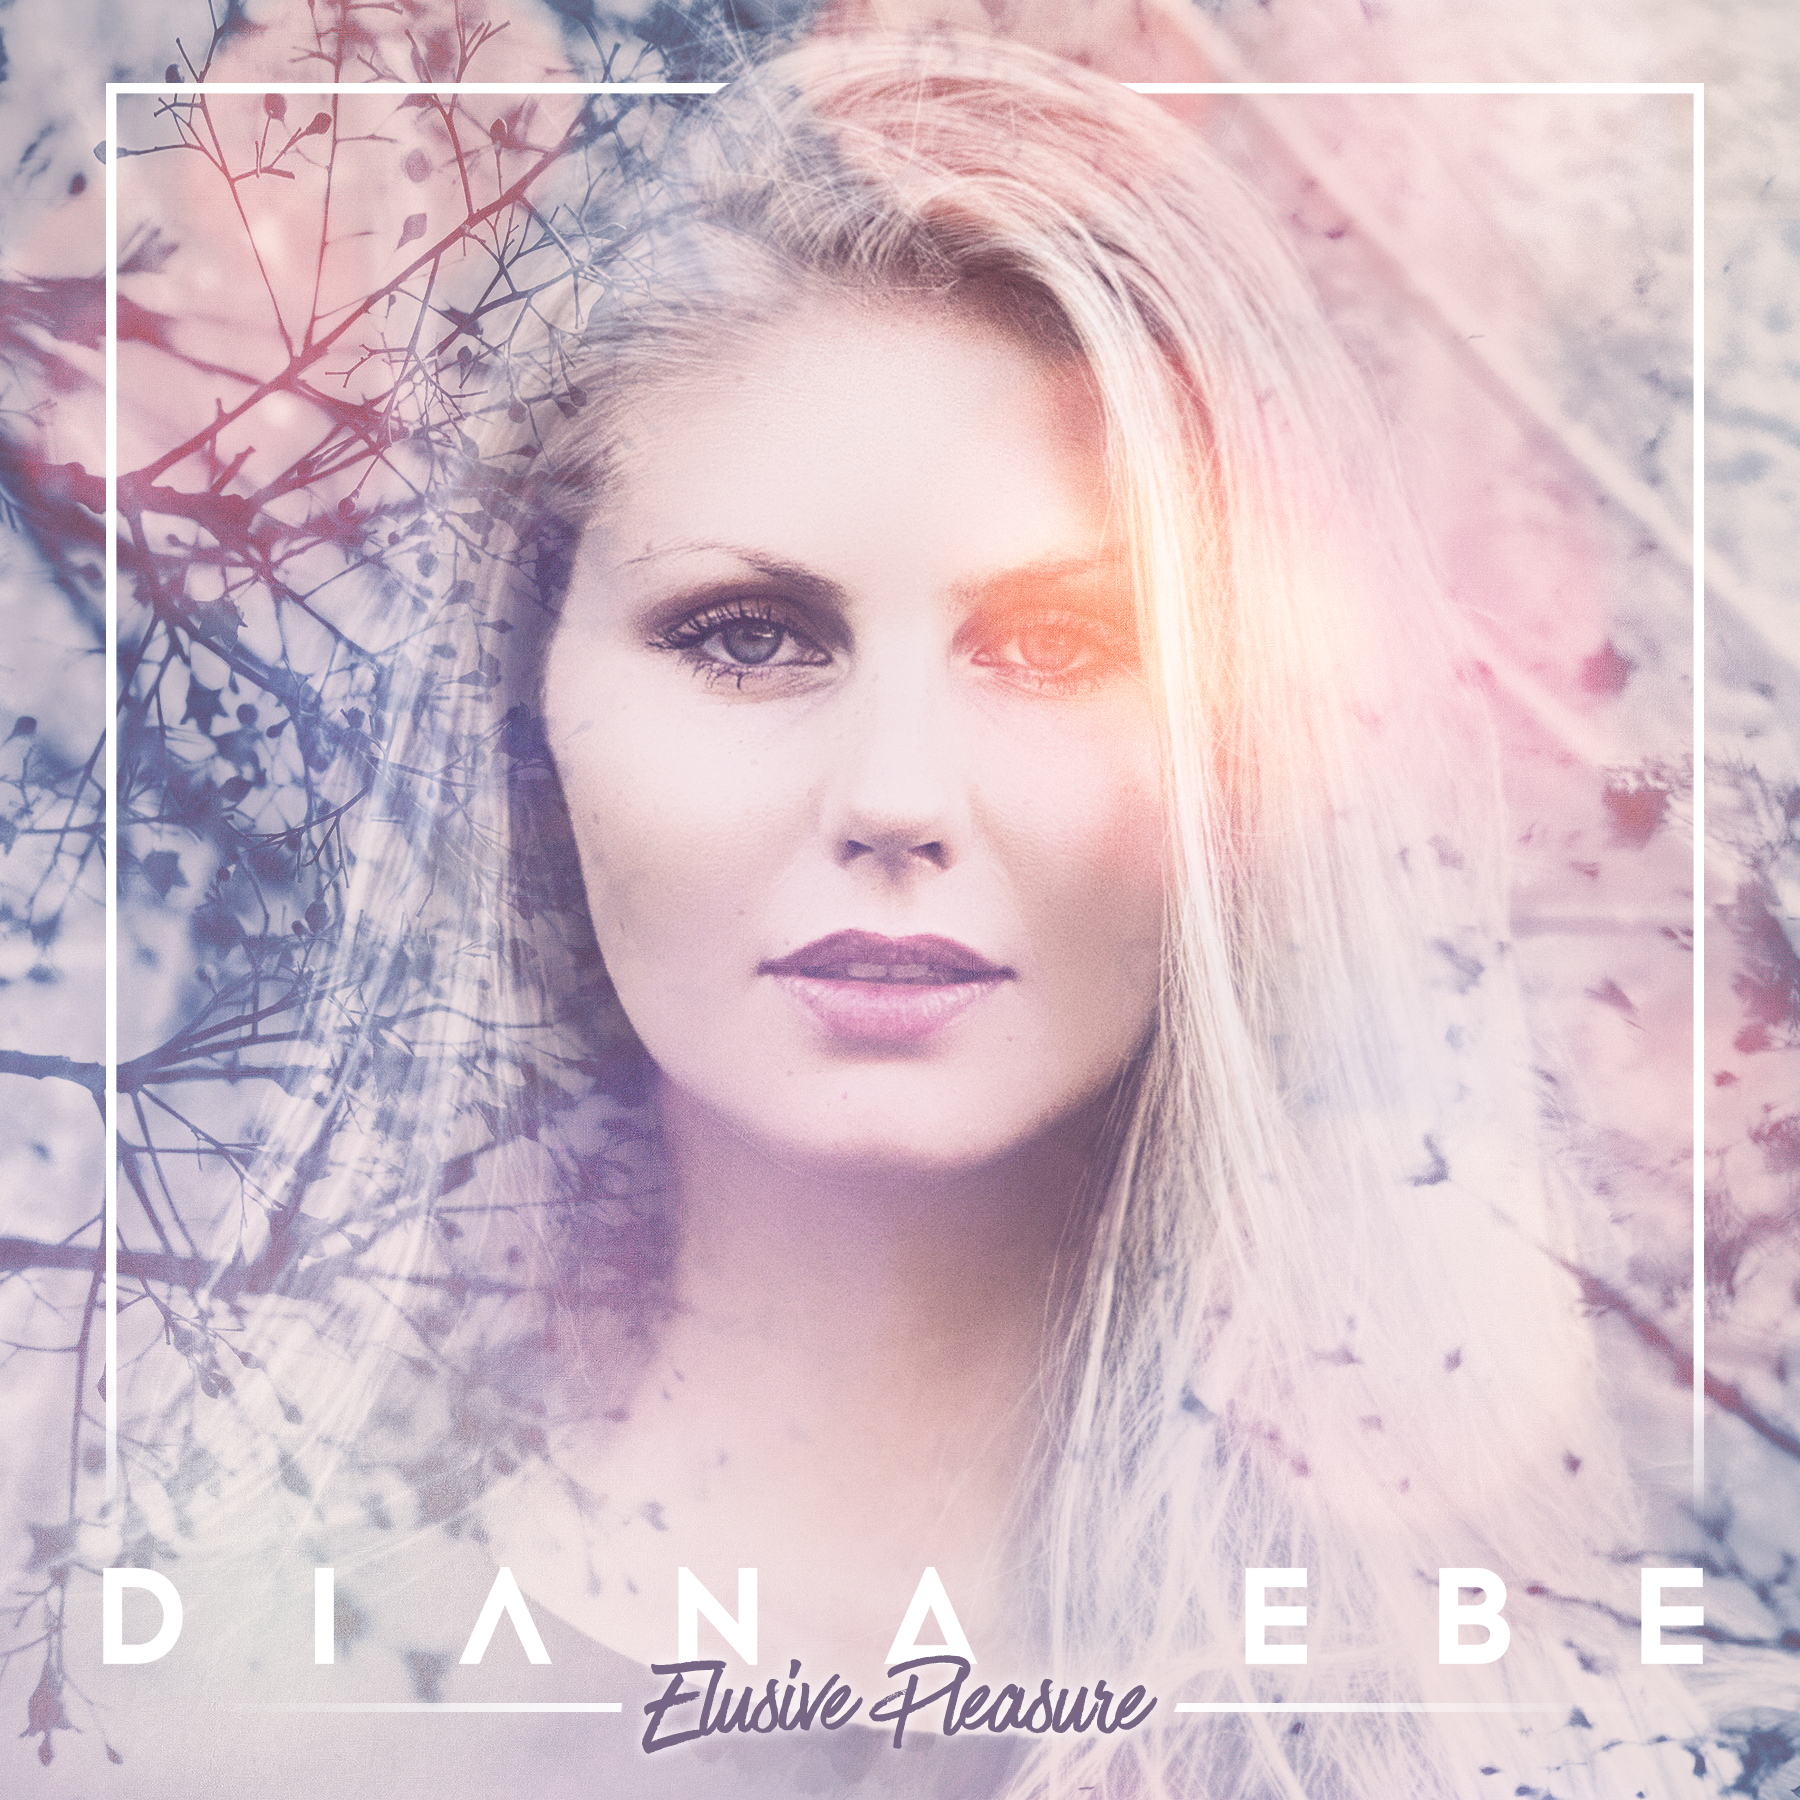 Diana Ebe – Reflecting The Idea Of Delusion In Songwriting